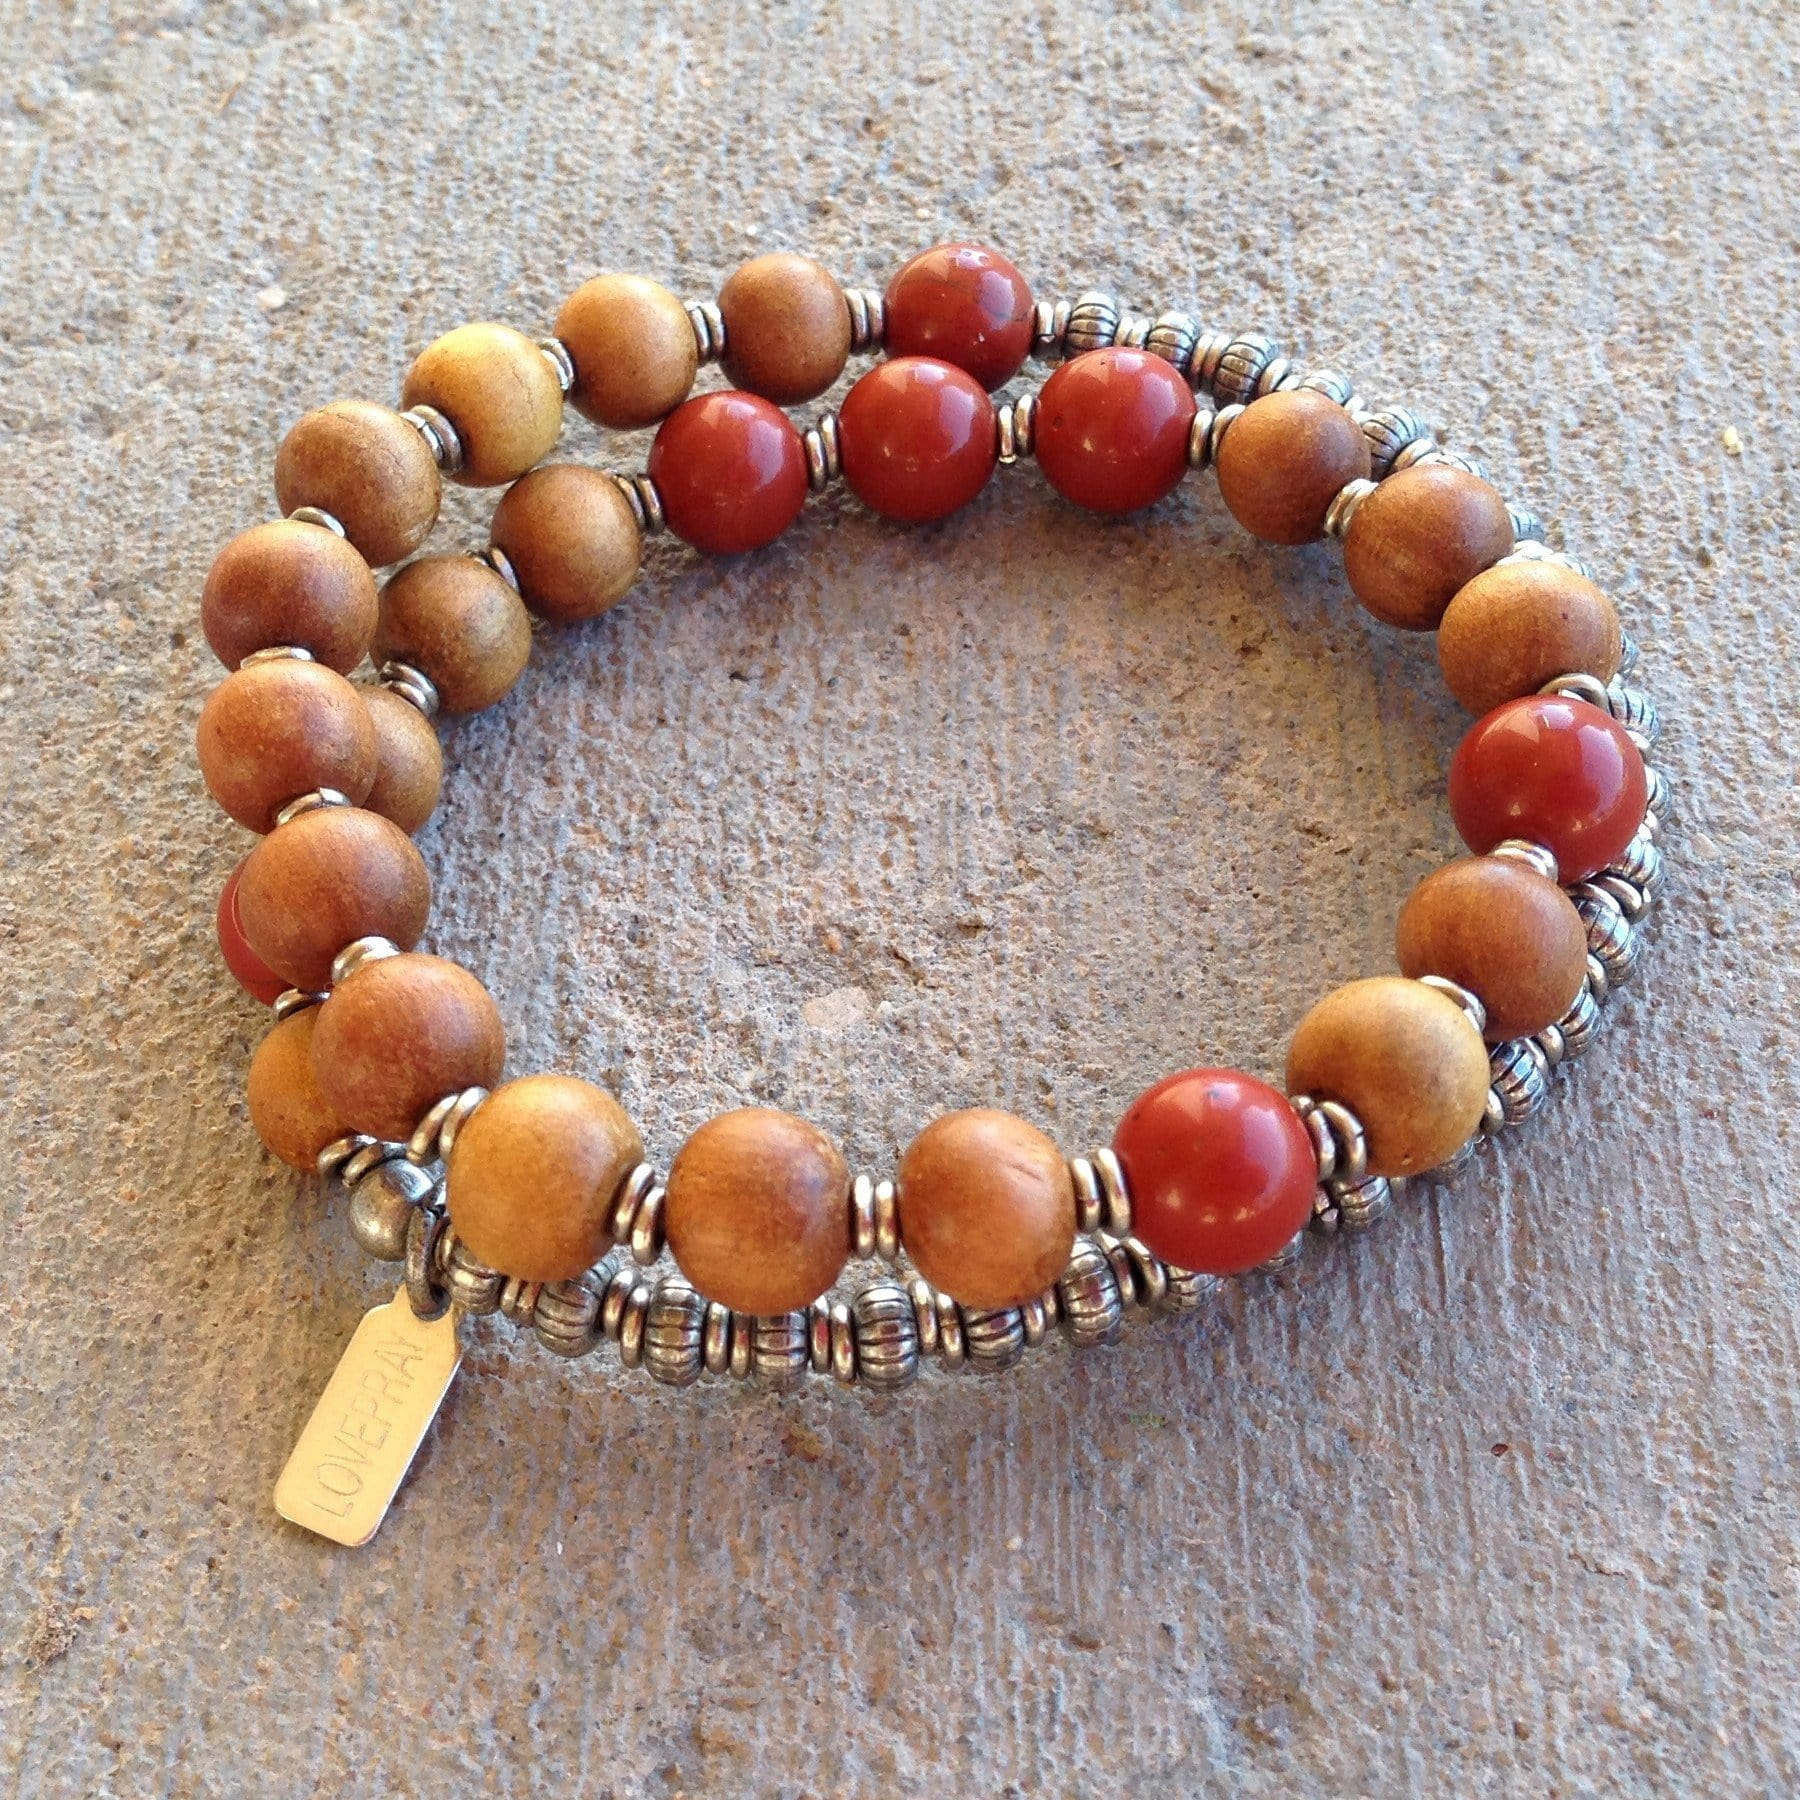 Bracelets - Healing And Grounding, Sandalwood And Red Jasper 27 Beads Unisex Mala Bracelet™